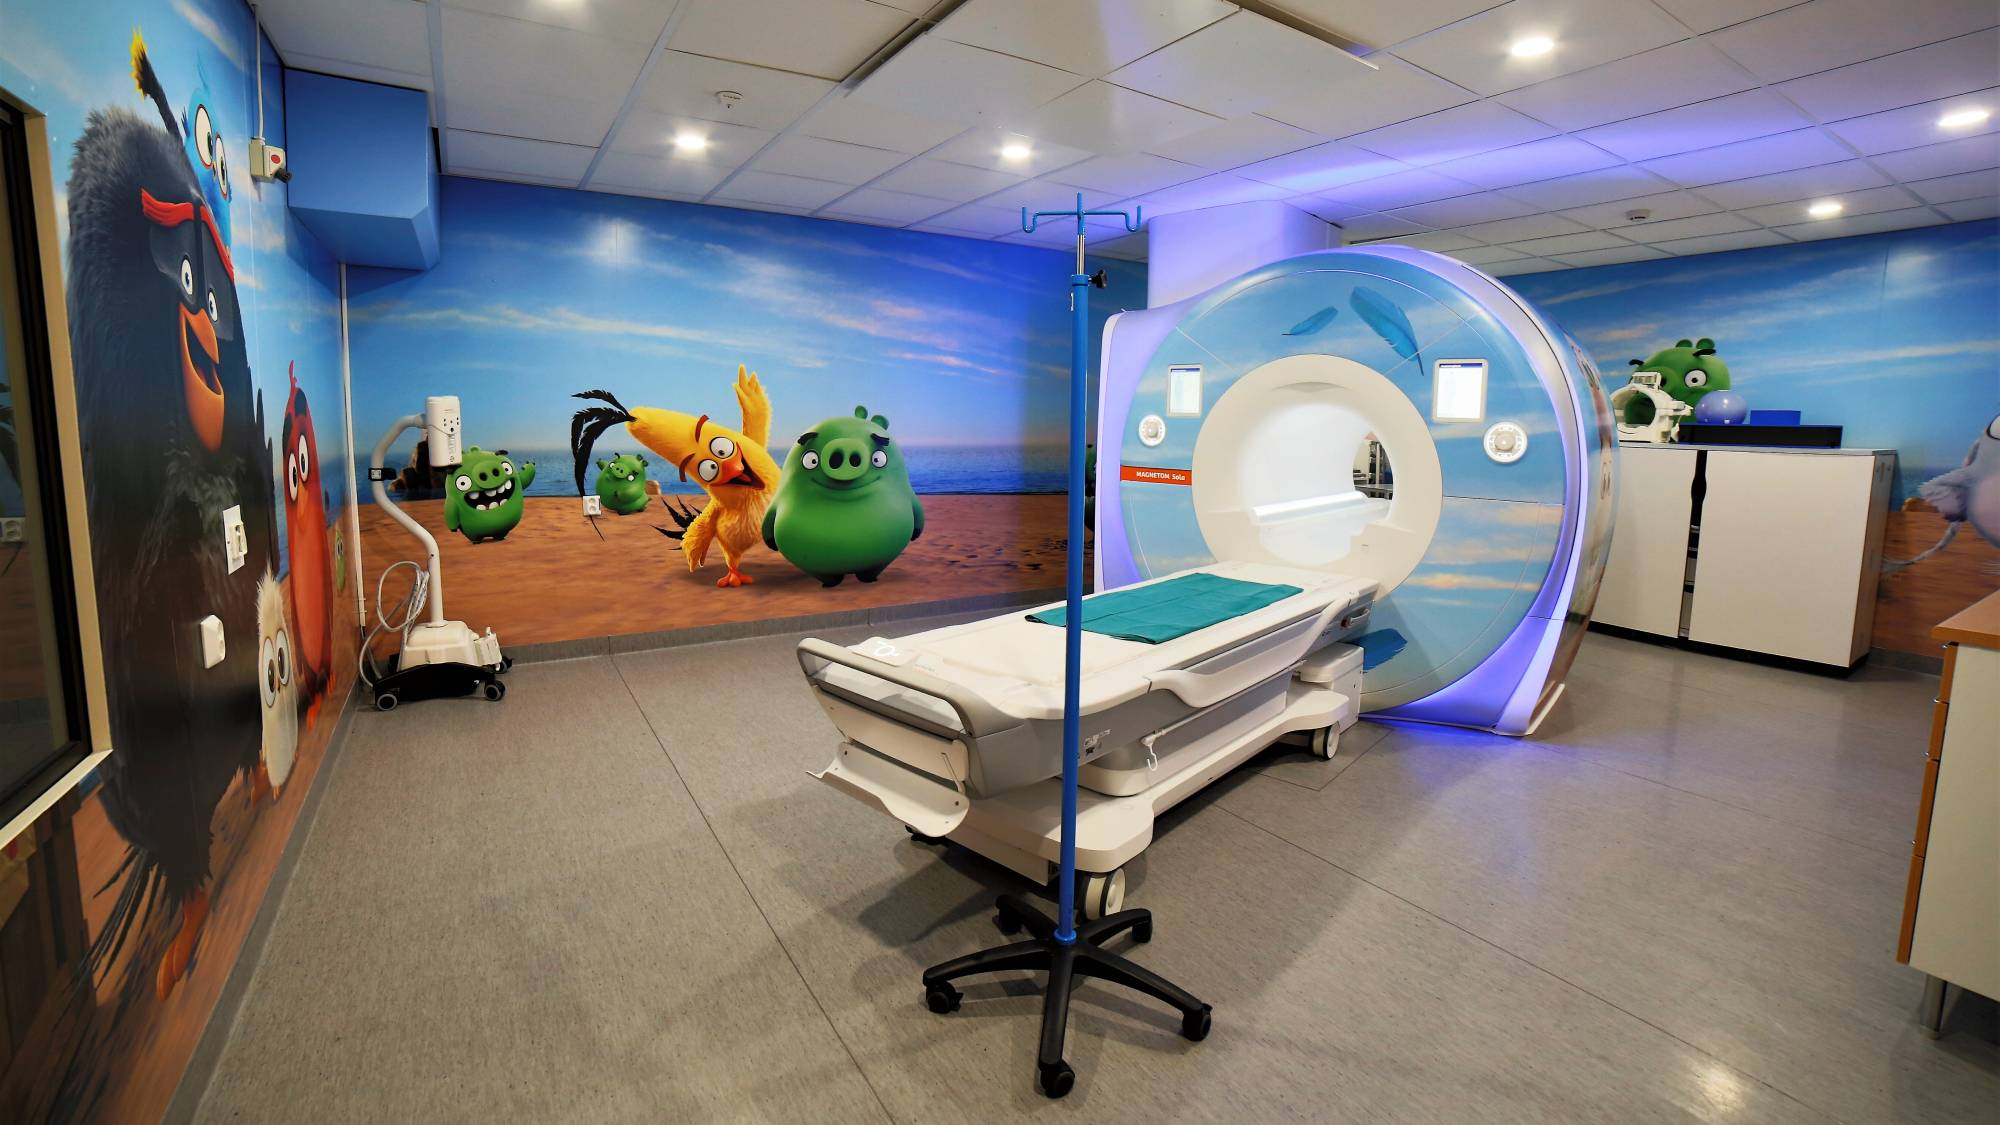 An MRI machine and other hospital equipment in a colourfully decorated room.